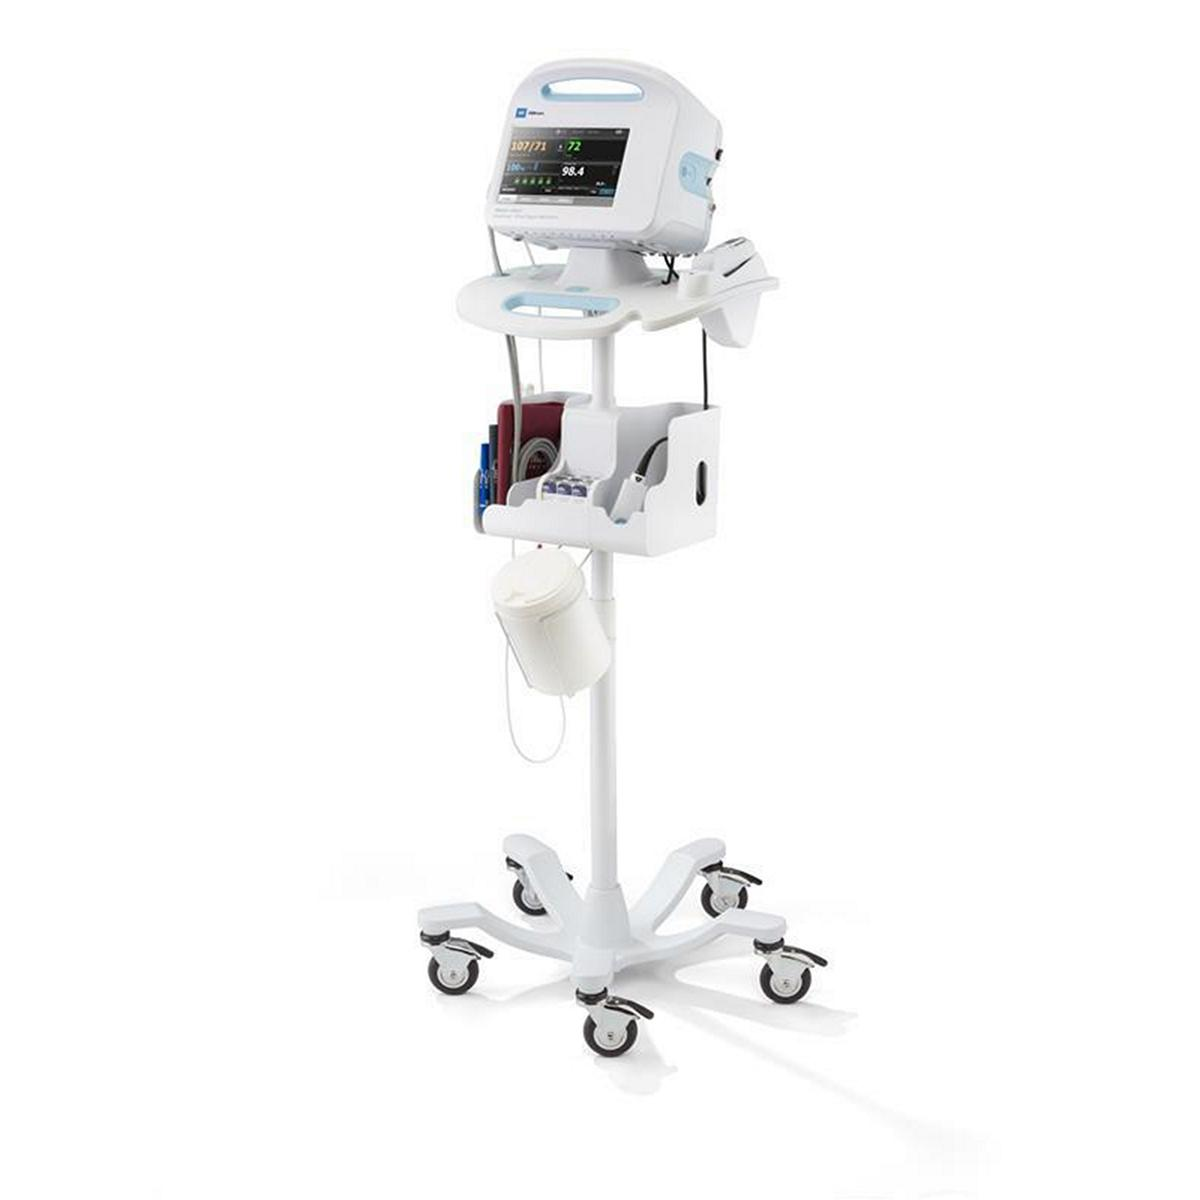 The Welch Allyn® Connex® Vital Signs Monitor facing left on ACM stand with Welch Allyn® Braun® ThermoScan® PRO 6000 Ear Thermometer